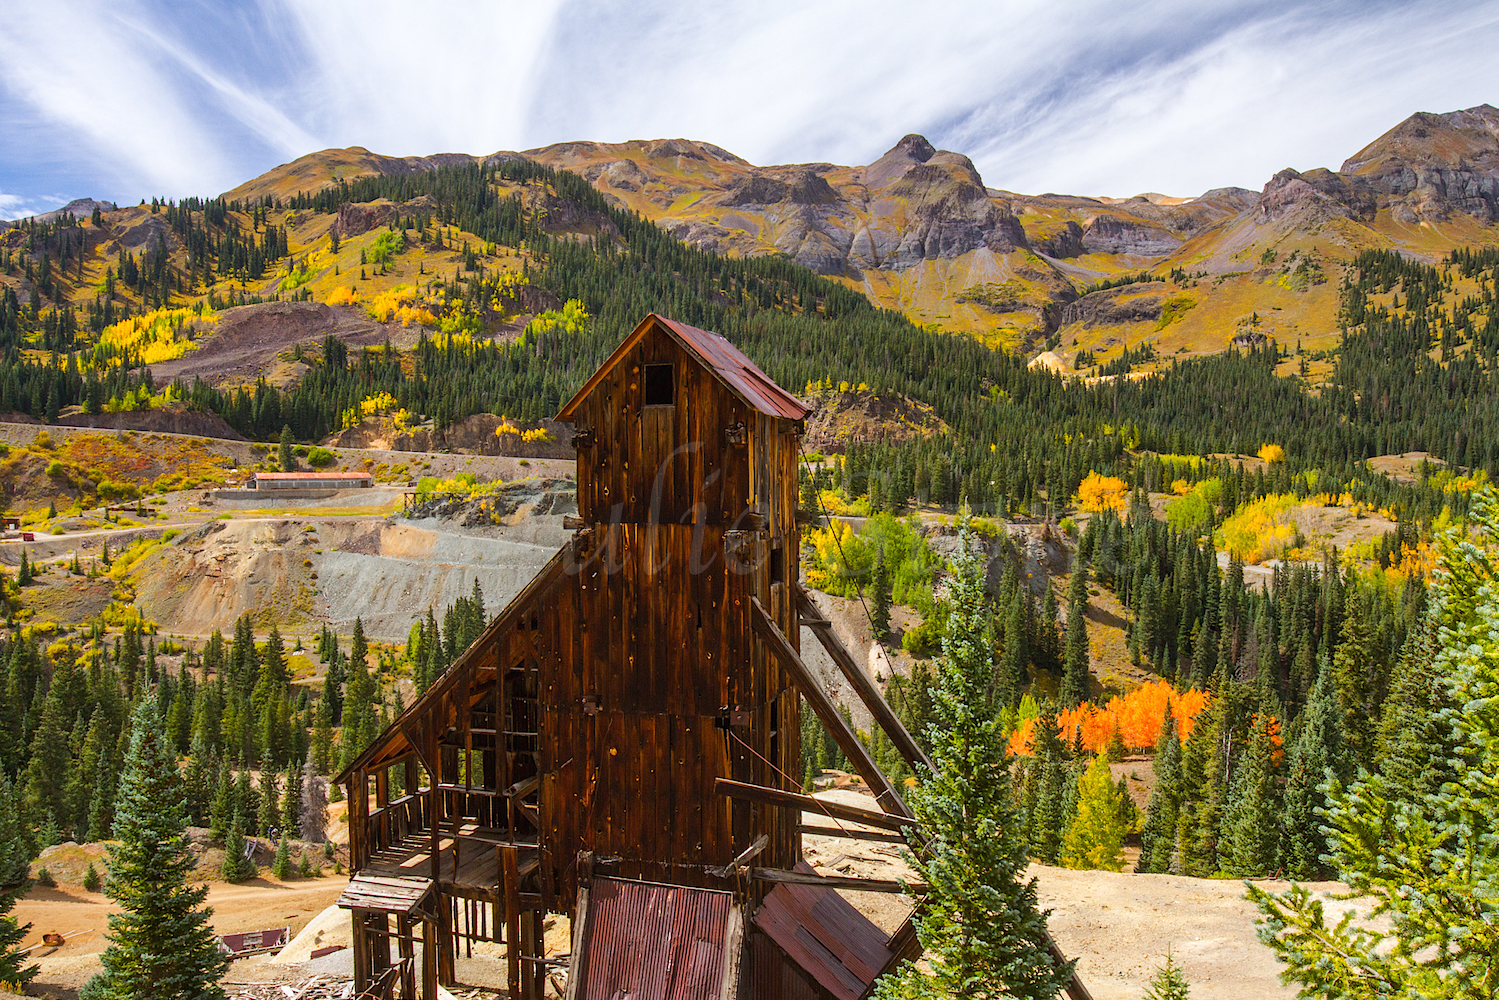 Red Mountain Fall Color, Image #9821